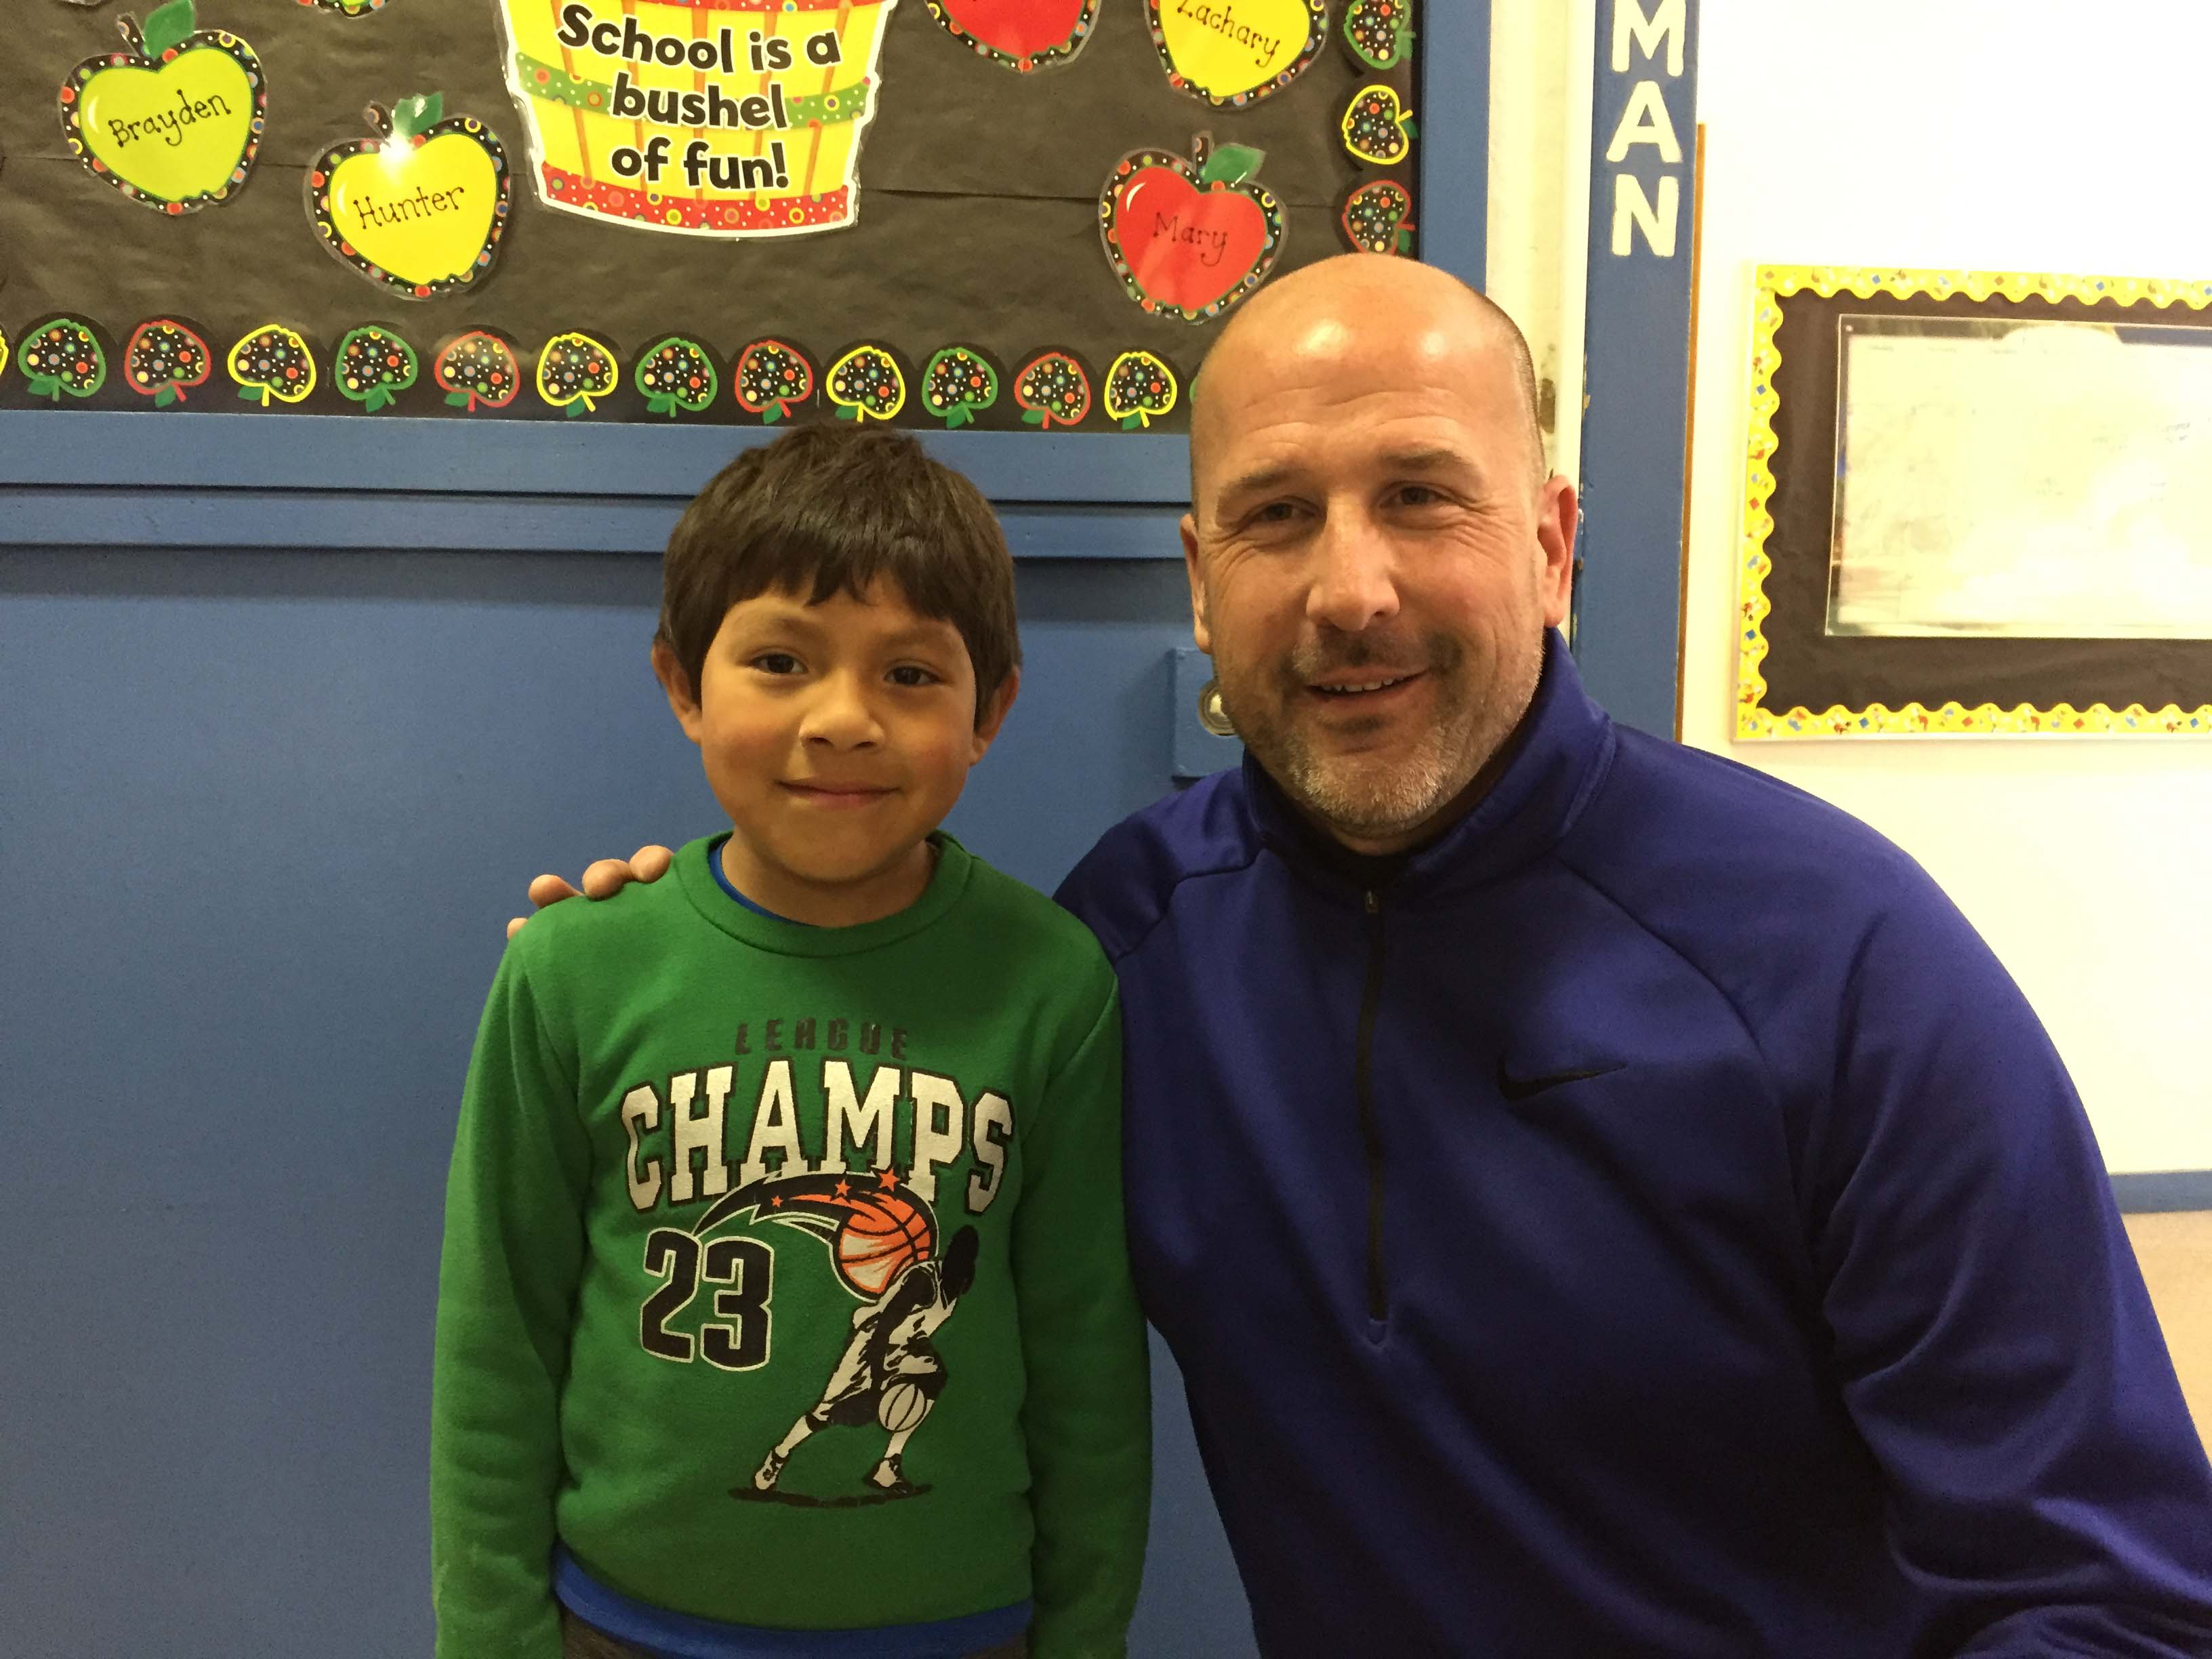 Silver Crest Principal Mark Hannan with kindergarten student Adrian Sosa. Hannan says Sosa makes him smile everyday.